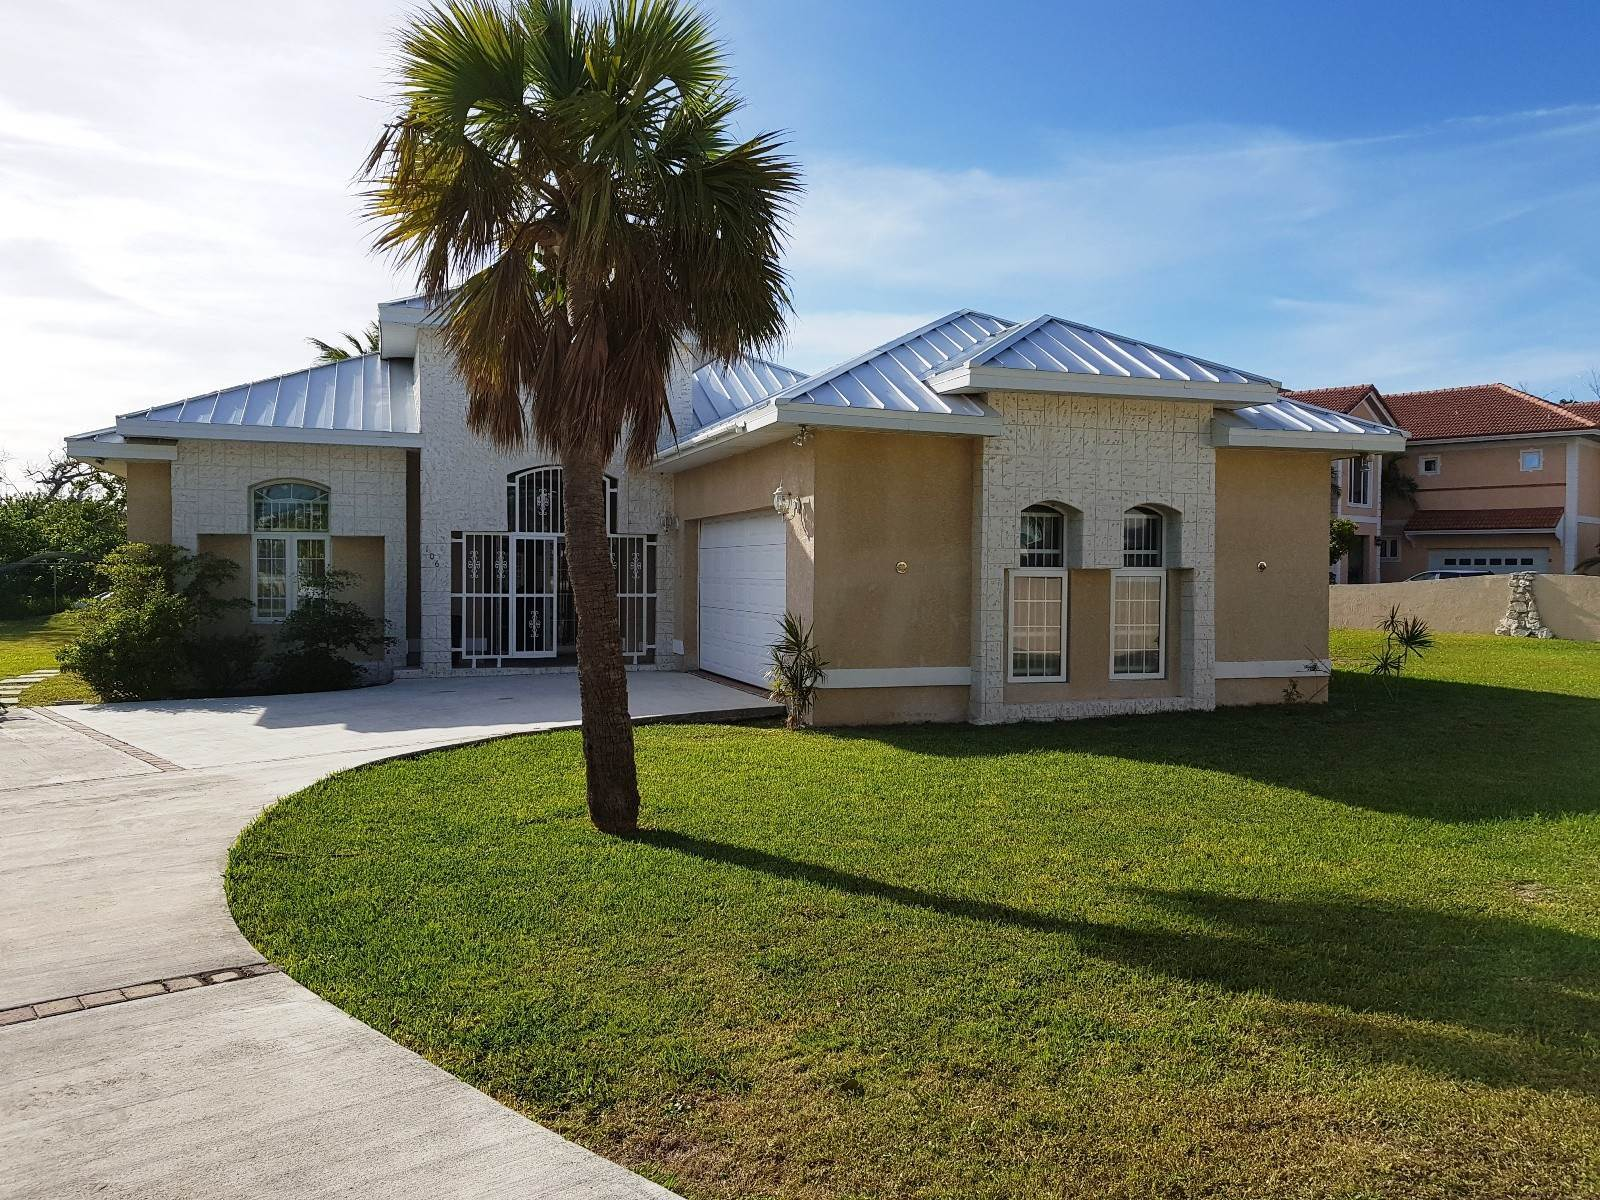 Single Family Homes for Sale at Great Home Near the Beach Lucayan Beach, Freeport And Grand Bahama, Bahamas